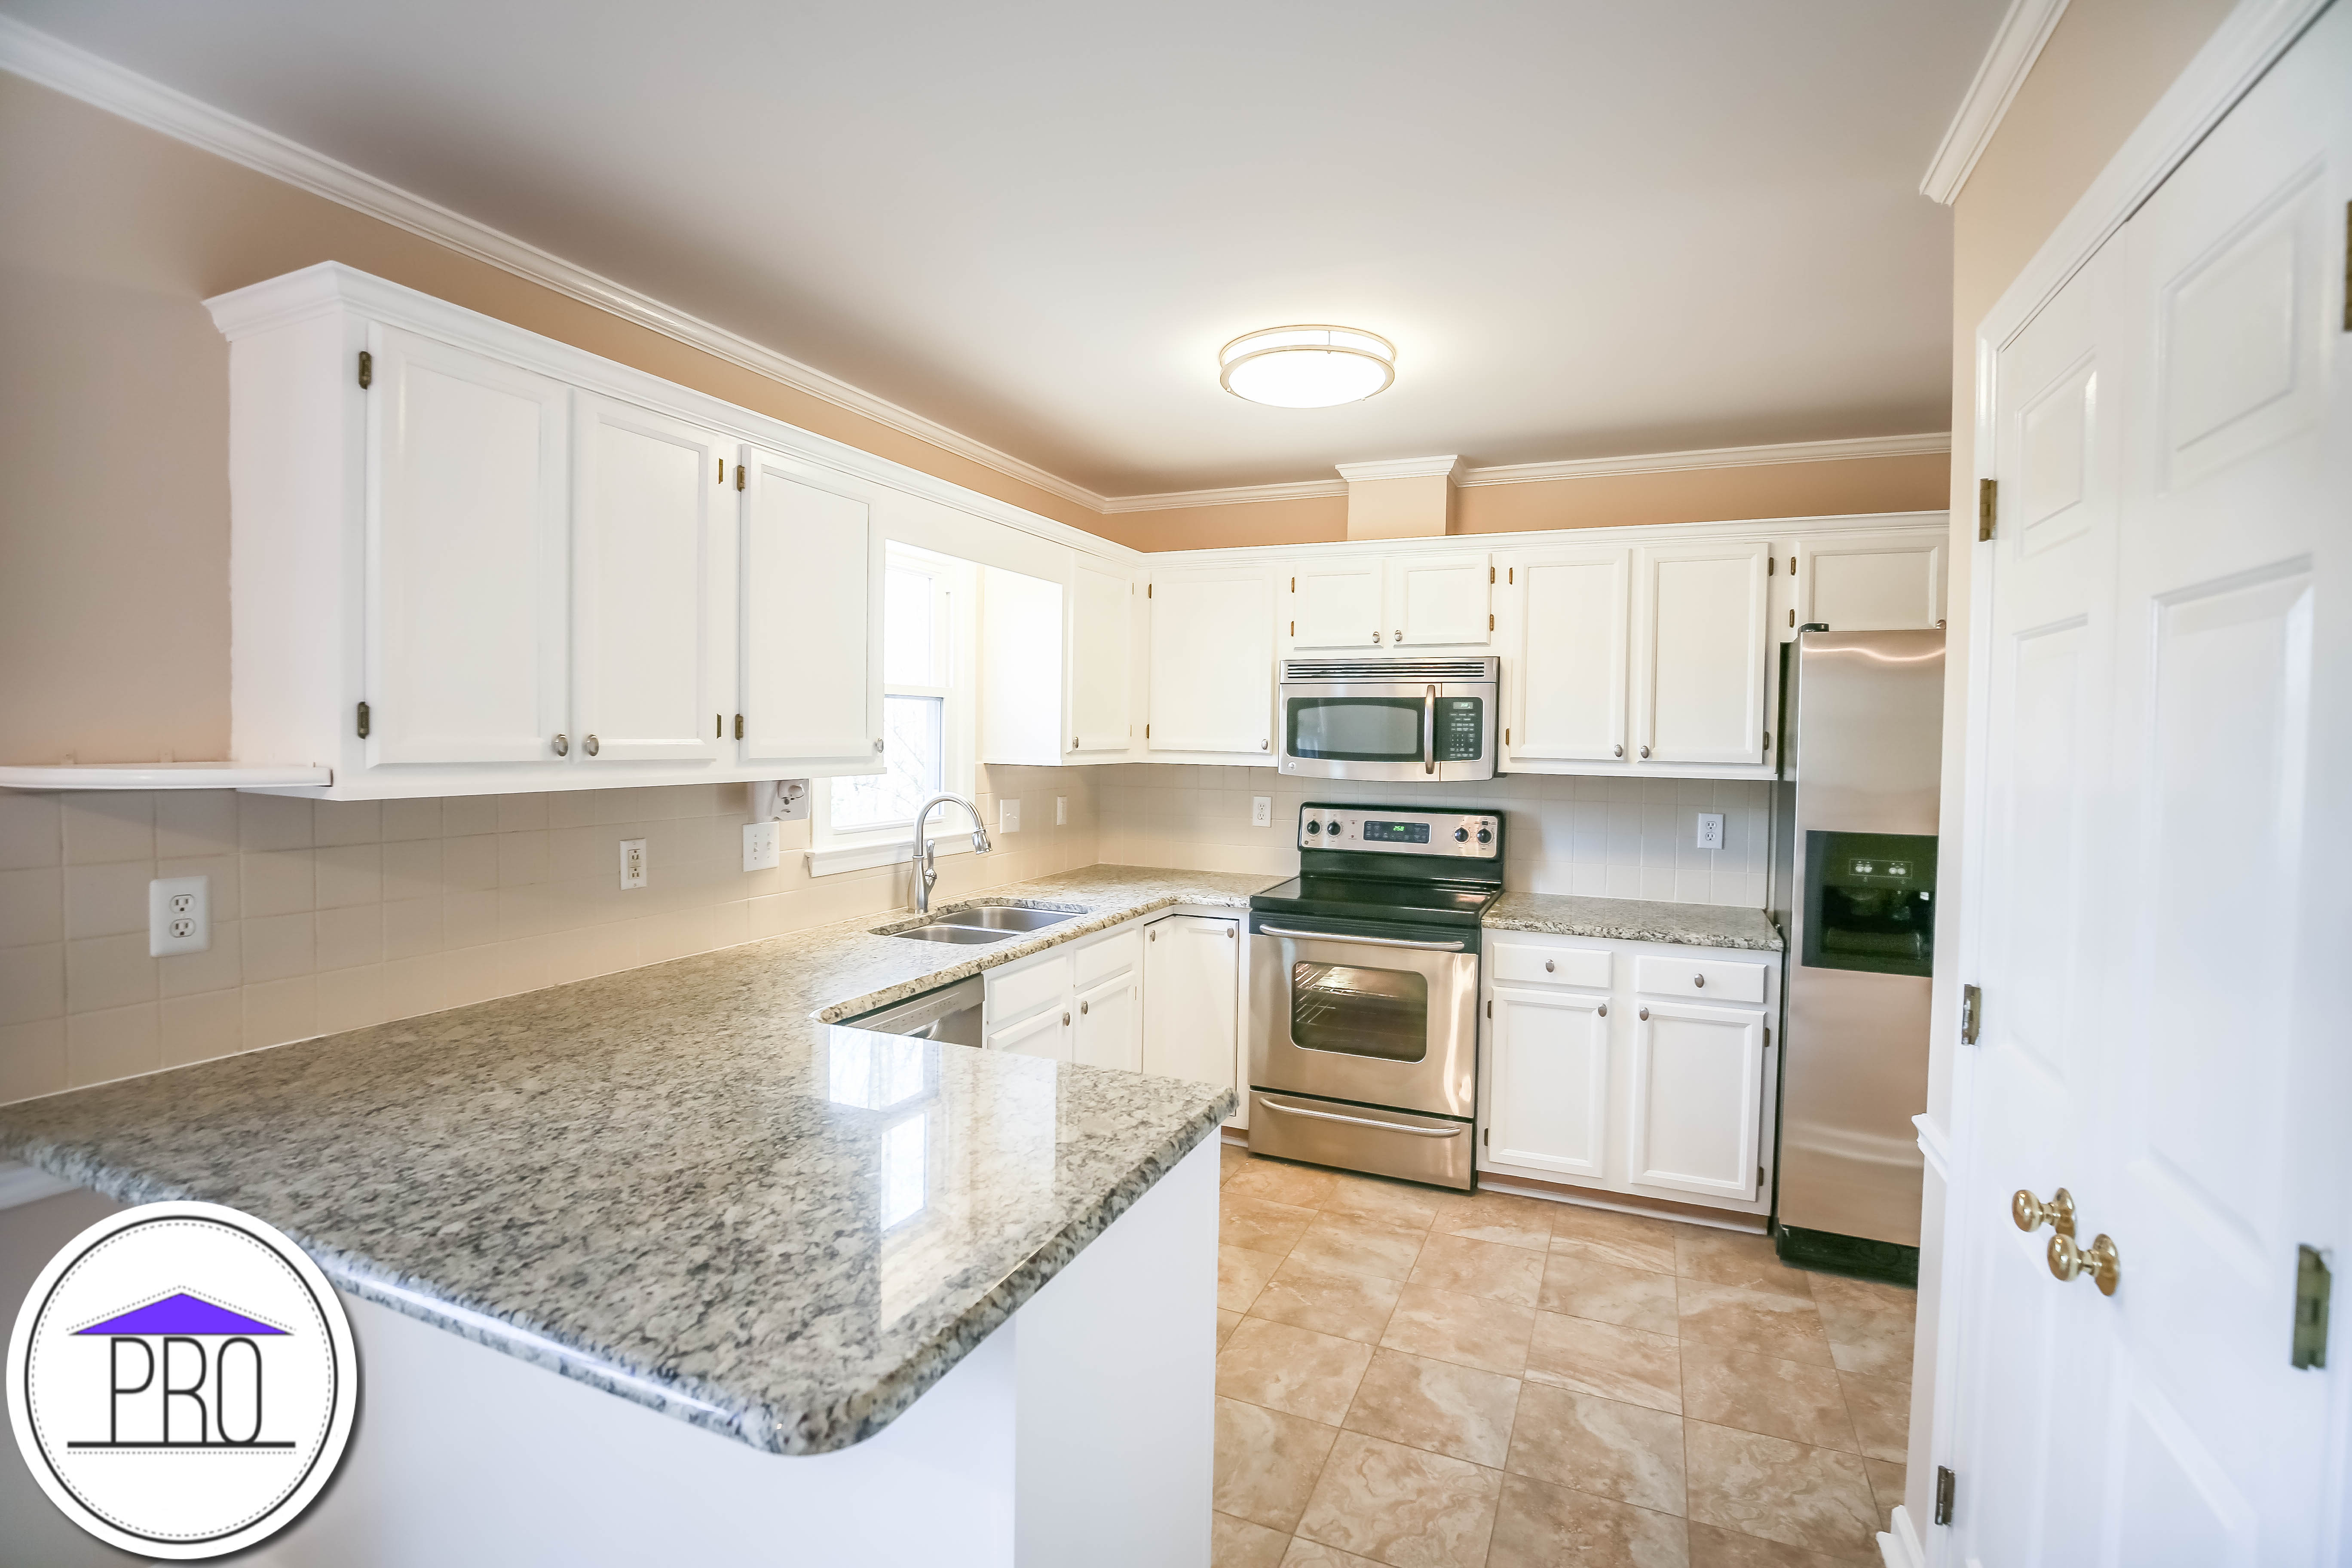 Updating Your Kitchen on a Budget | Pro Realty Group